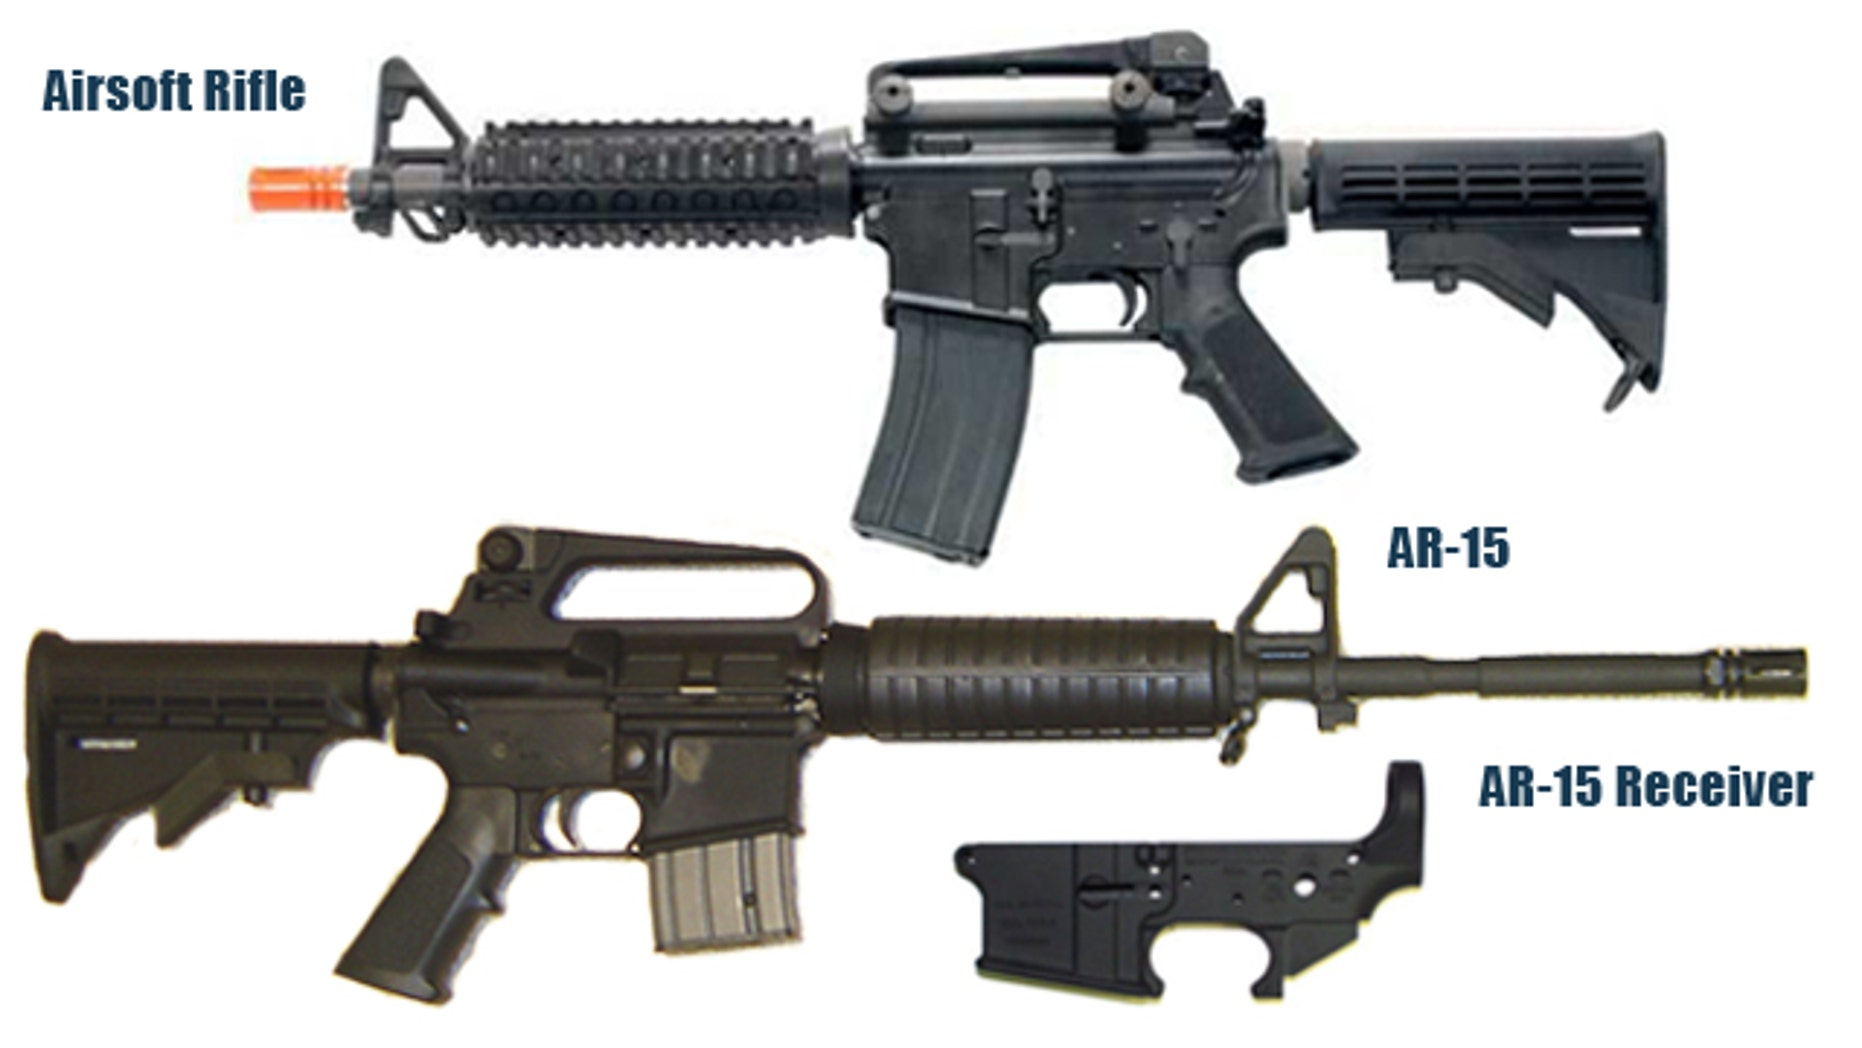 Exclusive Toy Gun Sold In U S Can Easily Be Converted To The Real